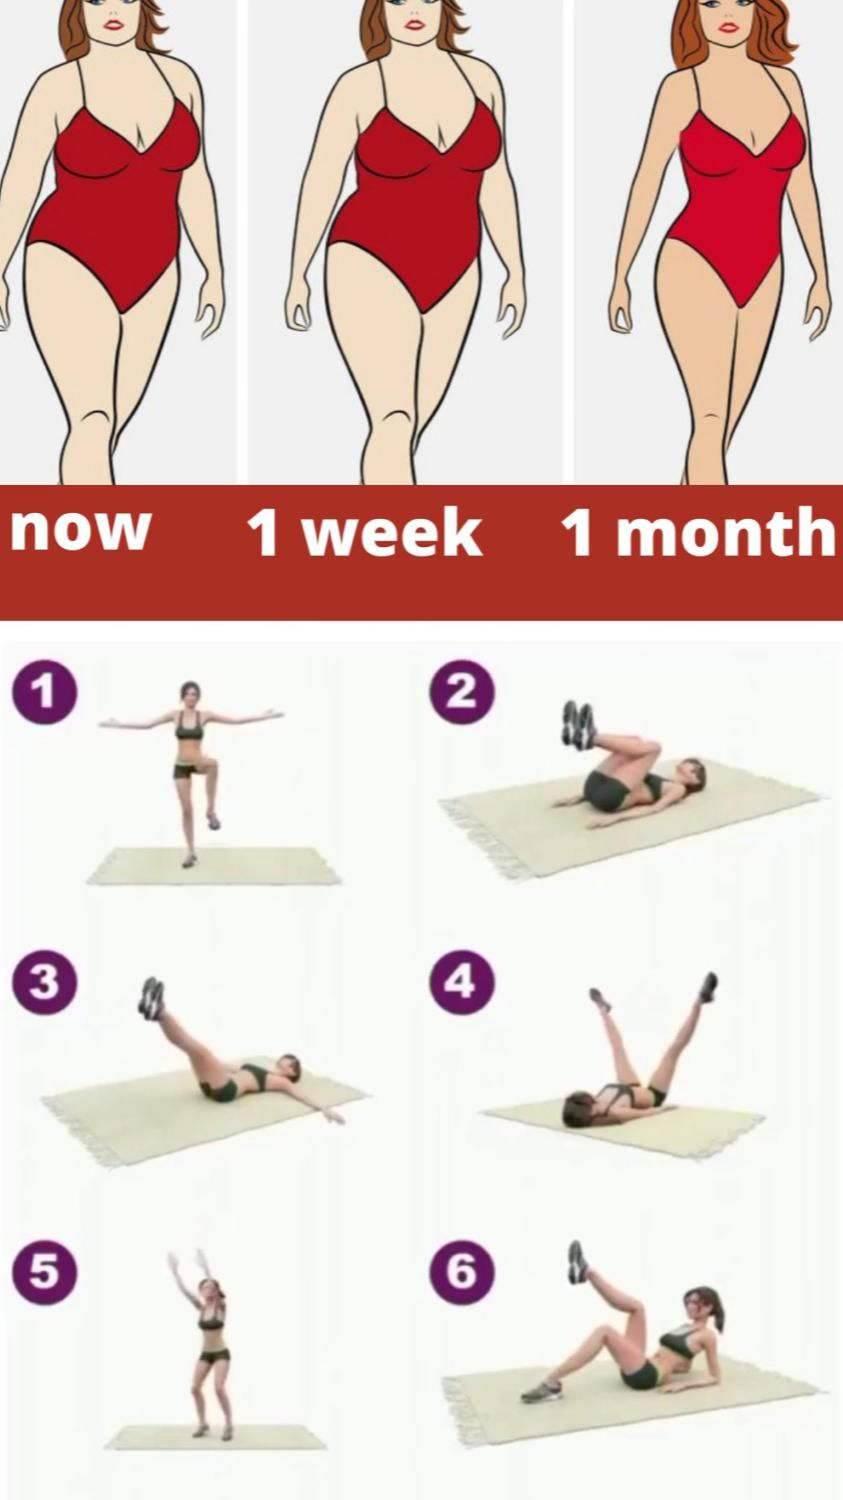 weight loss tips for women 🏋️♂️🏋️♂️🏋️♂️🏋️♂️